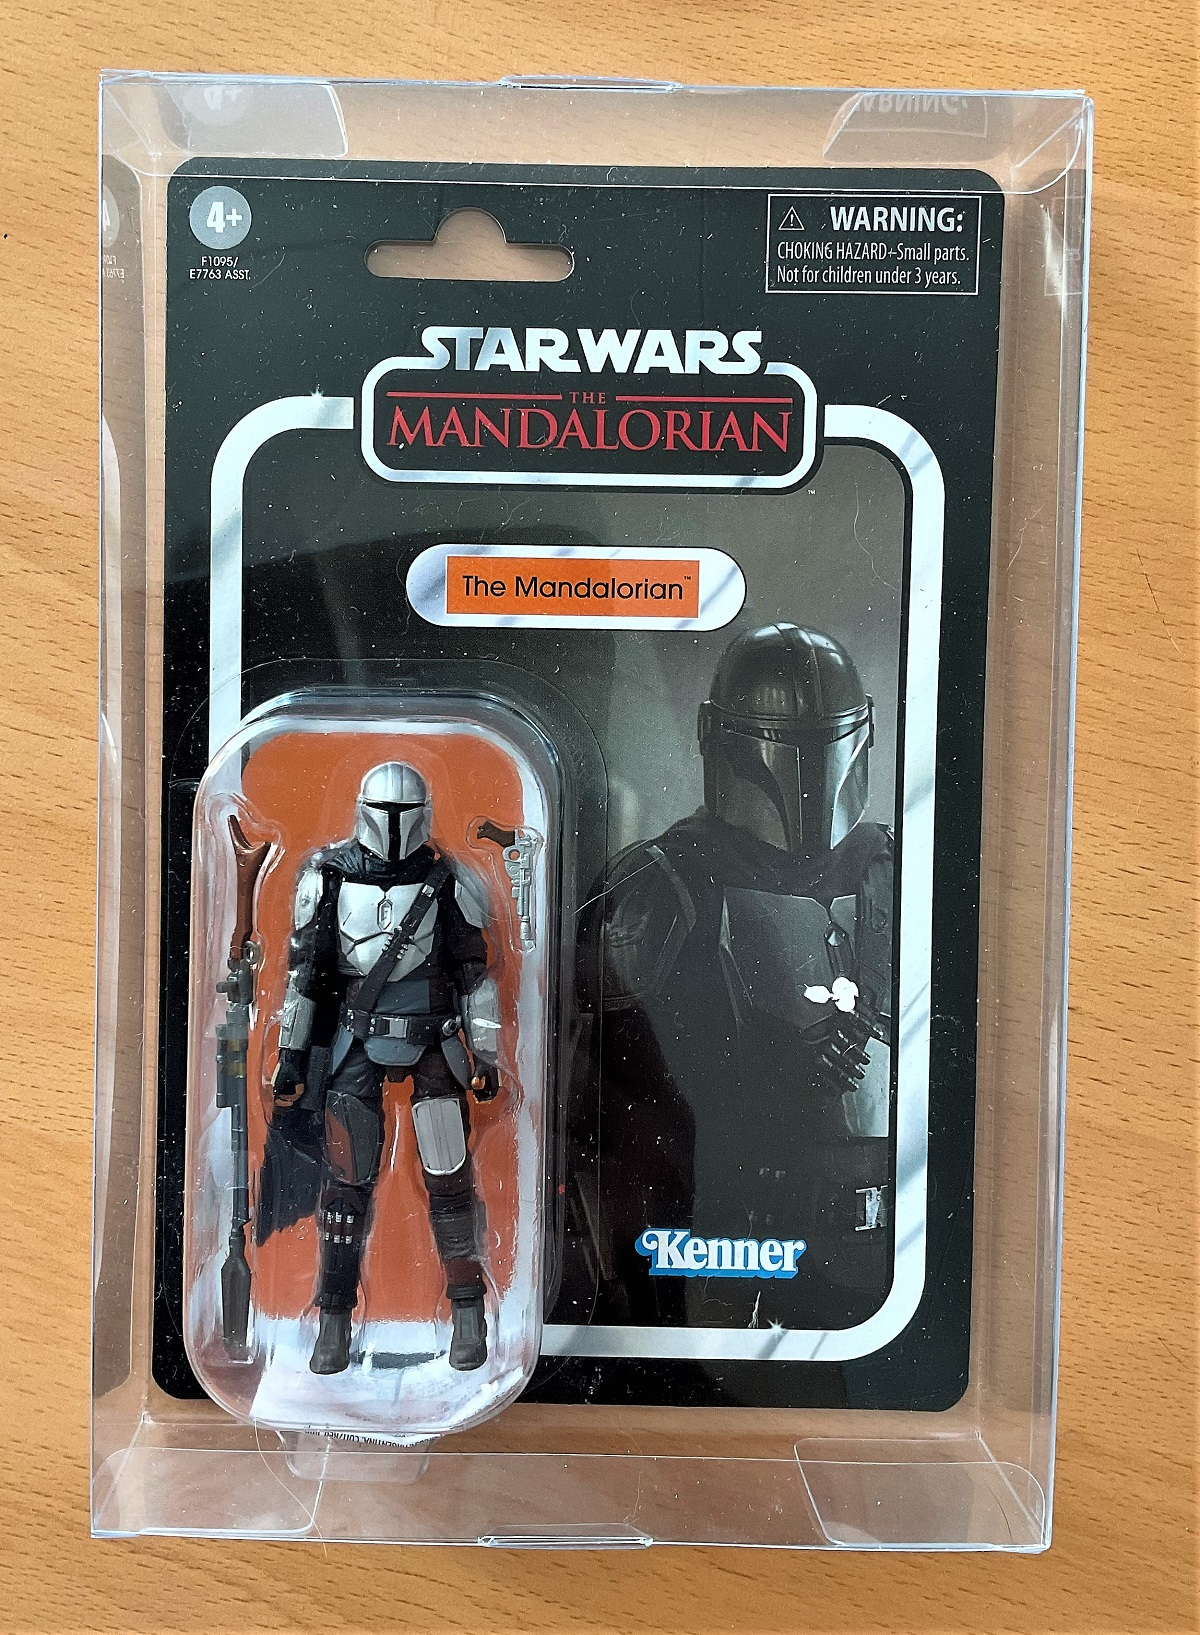 Star Wars, miniature action figure of The Mandalorian. This item is still complete in its